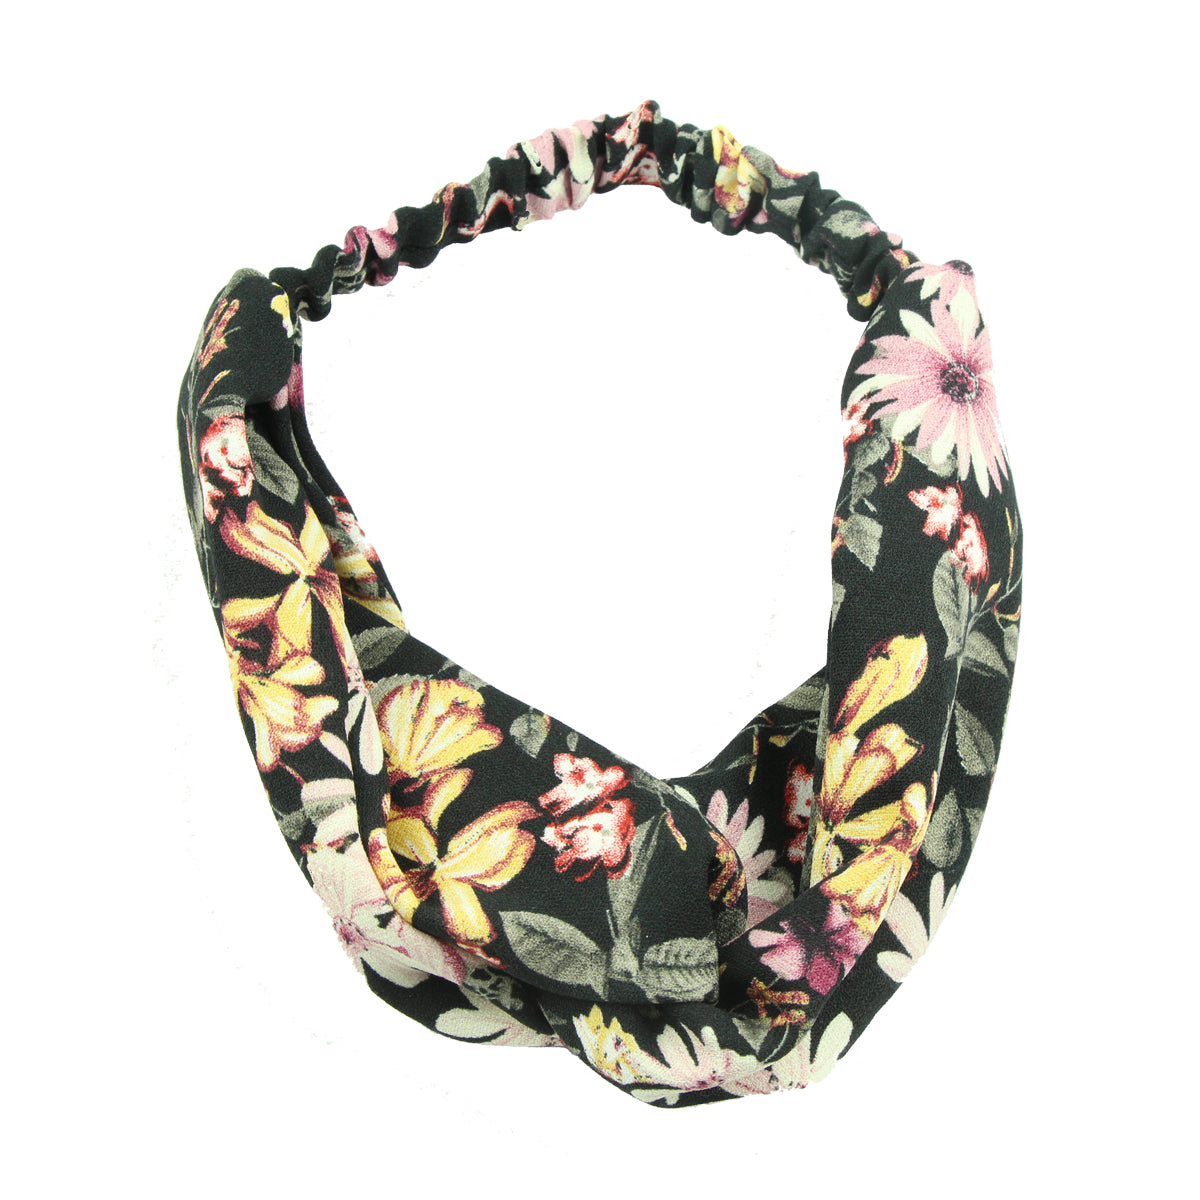 4 Pack Women Headband Boho Floral Style Criss Cross Head Wrap Hair Band 6720